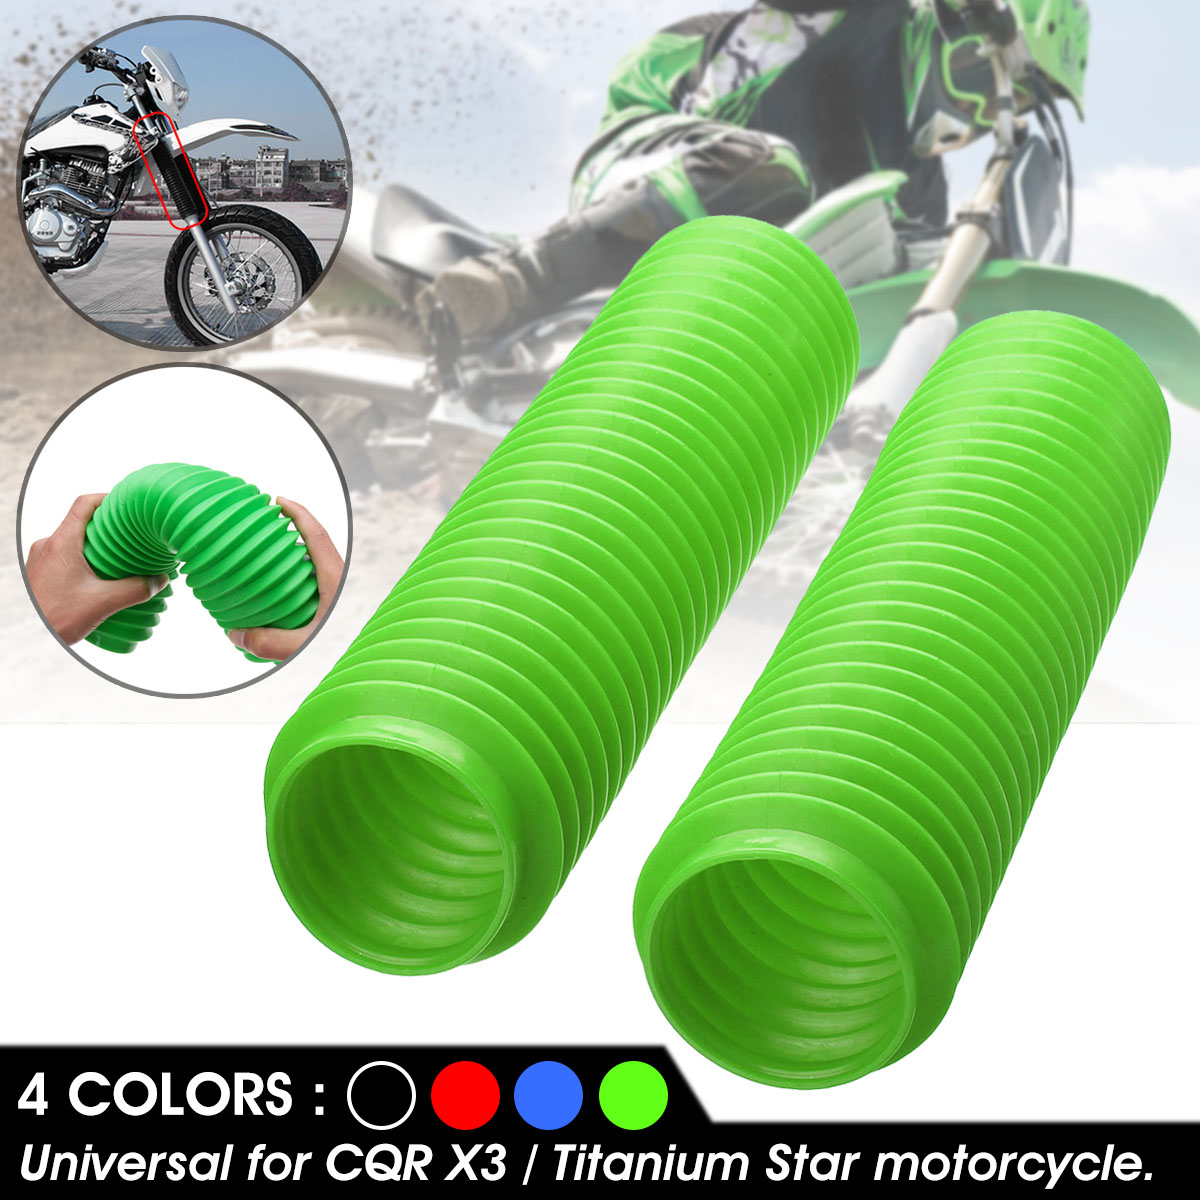 Motorcycle Fork Dustproof Cover Gaiters Boots Gaitor 230mm x 35mm